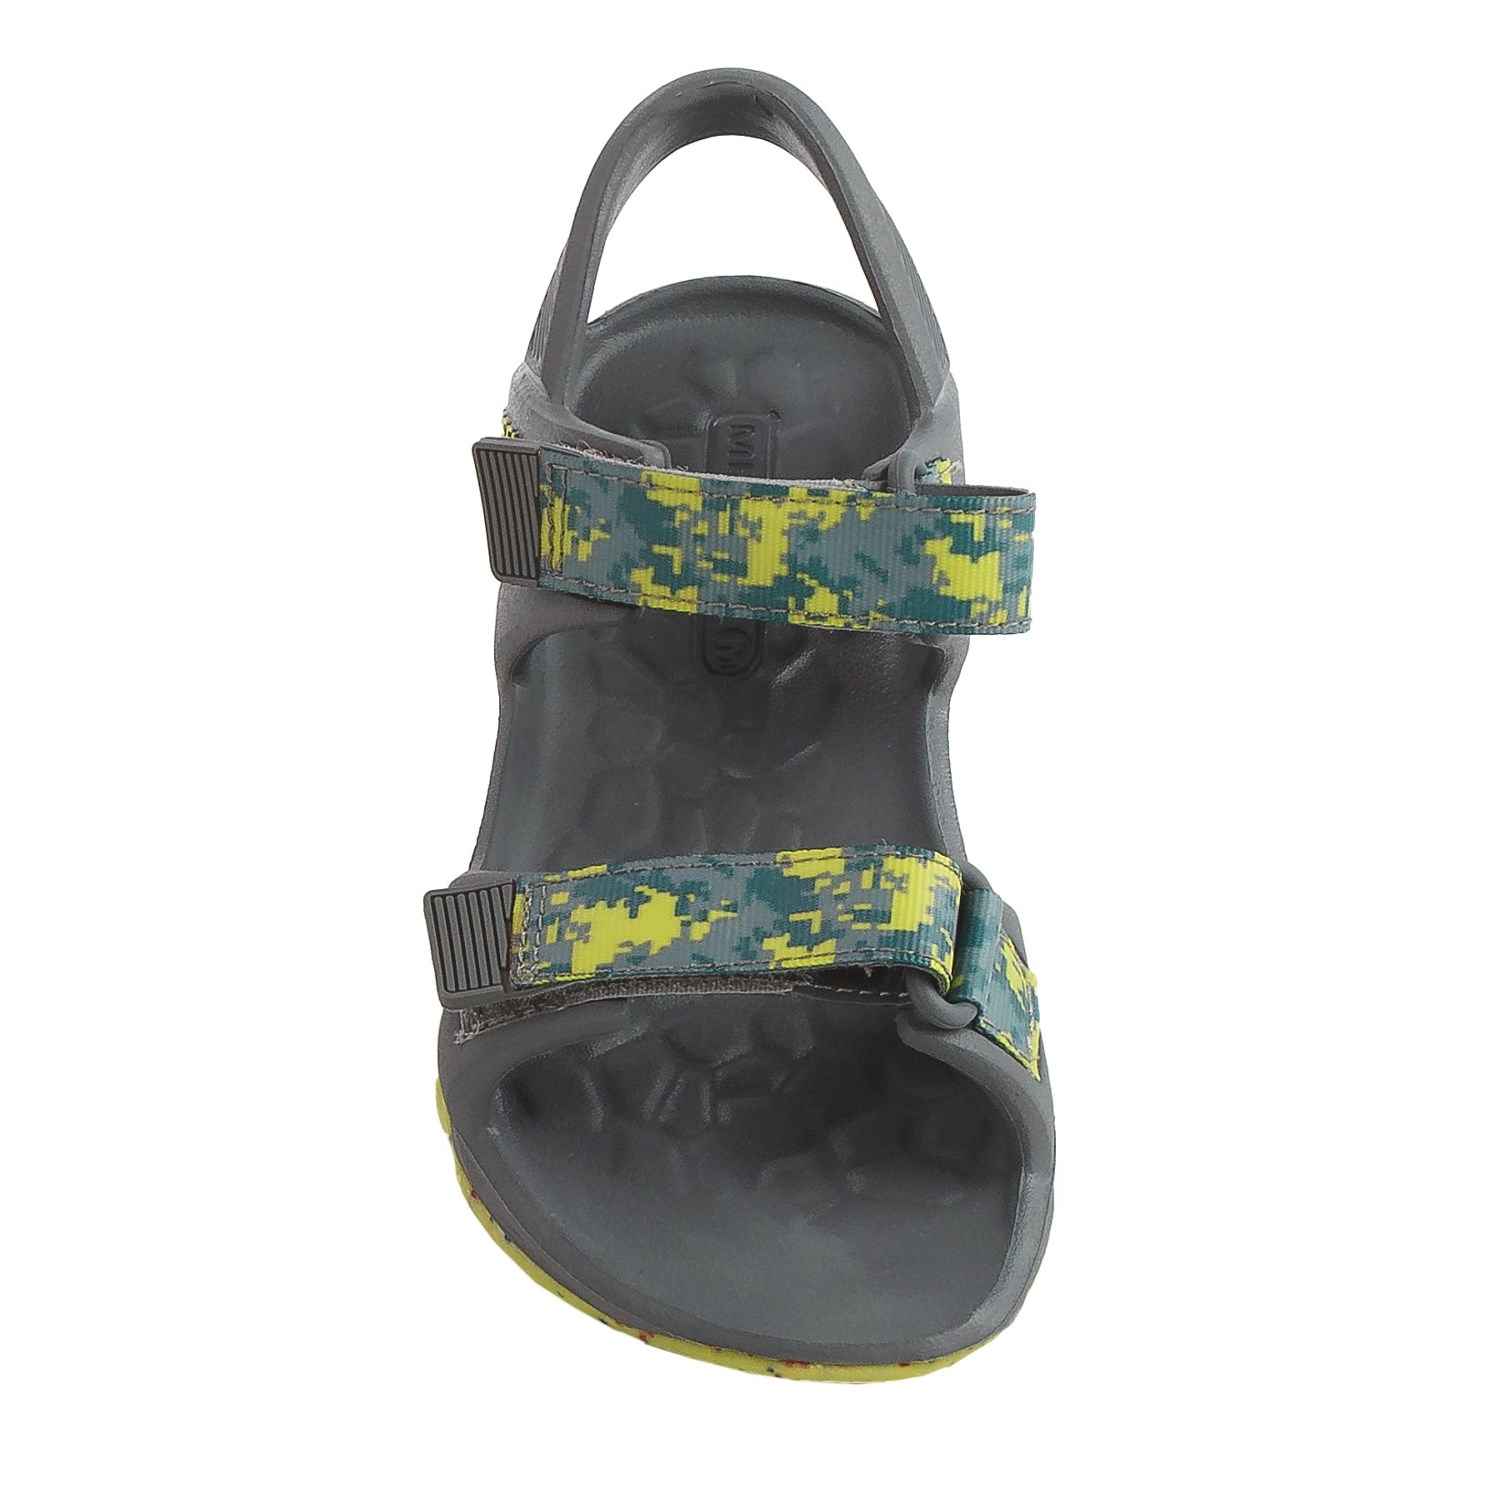 ca0092634fb7 Merrell Hydro Drift Sandals (For Infant and Toddler Boys) - Save 42%